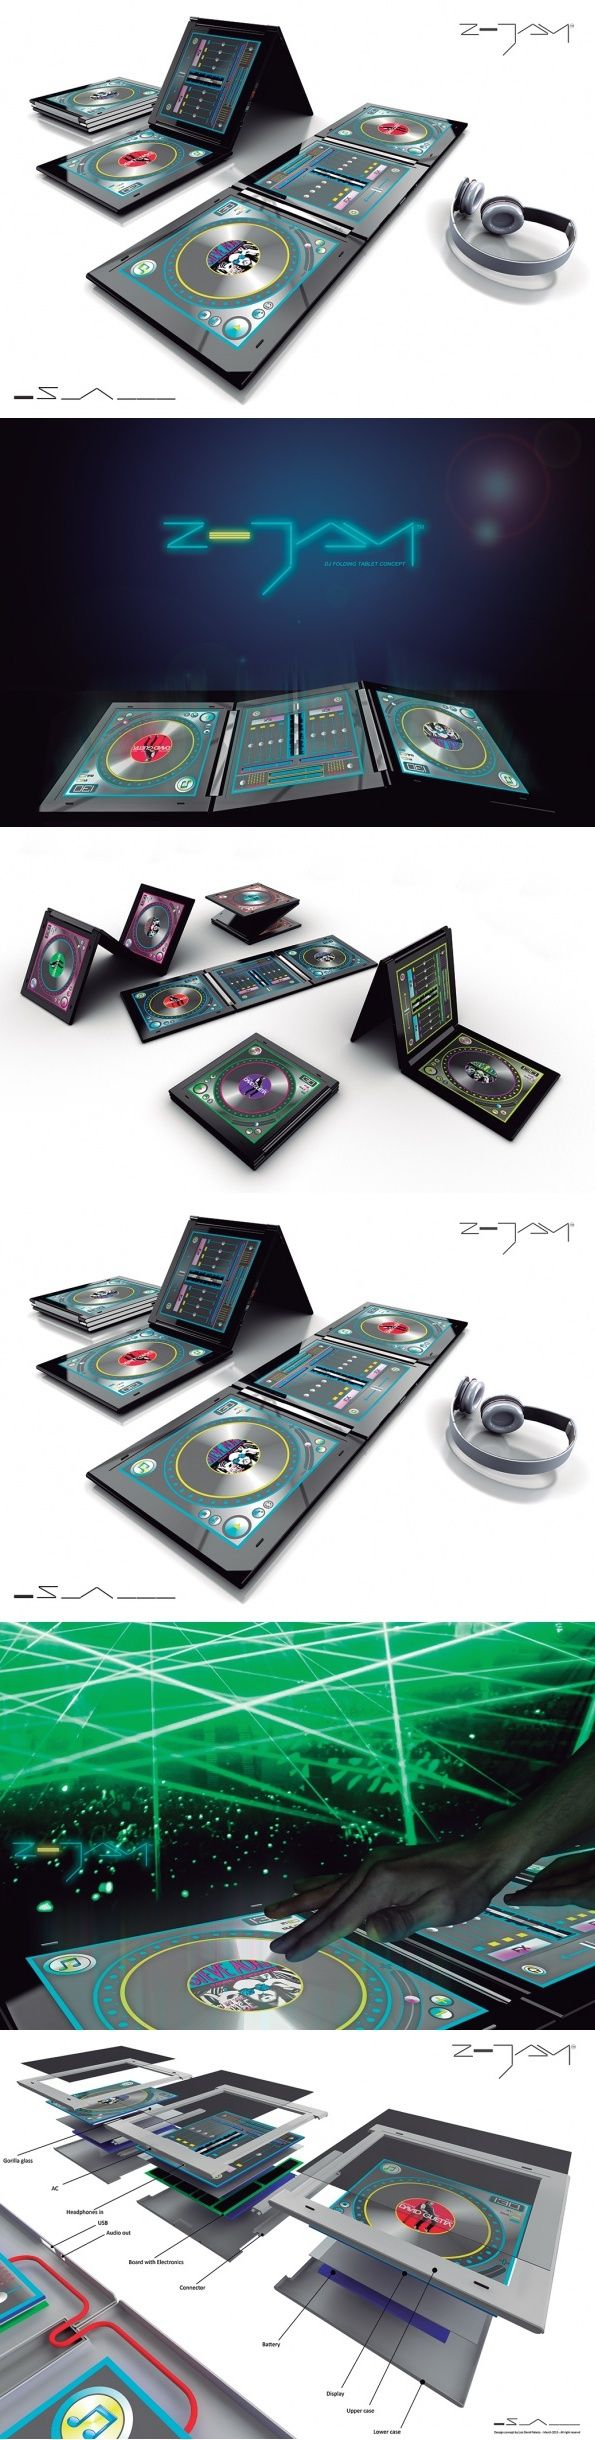 There are loads of DJ apps for tablets, but they lack true usability when it comes time to mix. The Z-JAY concept allows the user to mix songs and apply effects combining all the necessary DJ equipment (one mixer and two decks) into one integrated system. #DJ #System #Music #Audio #YankoDesign